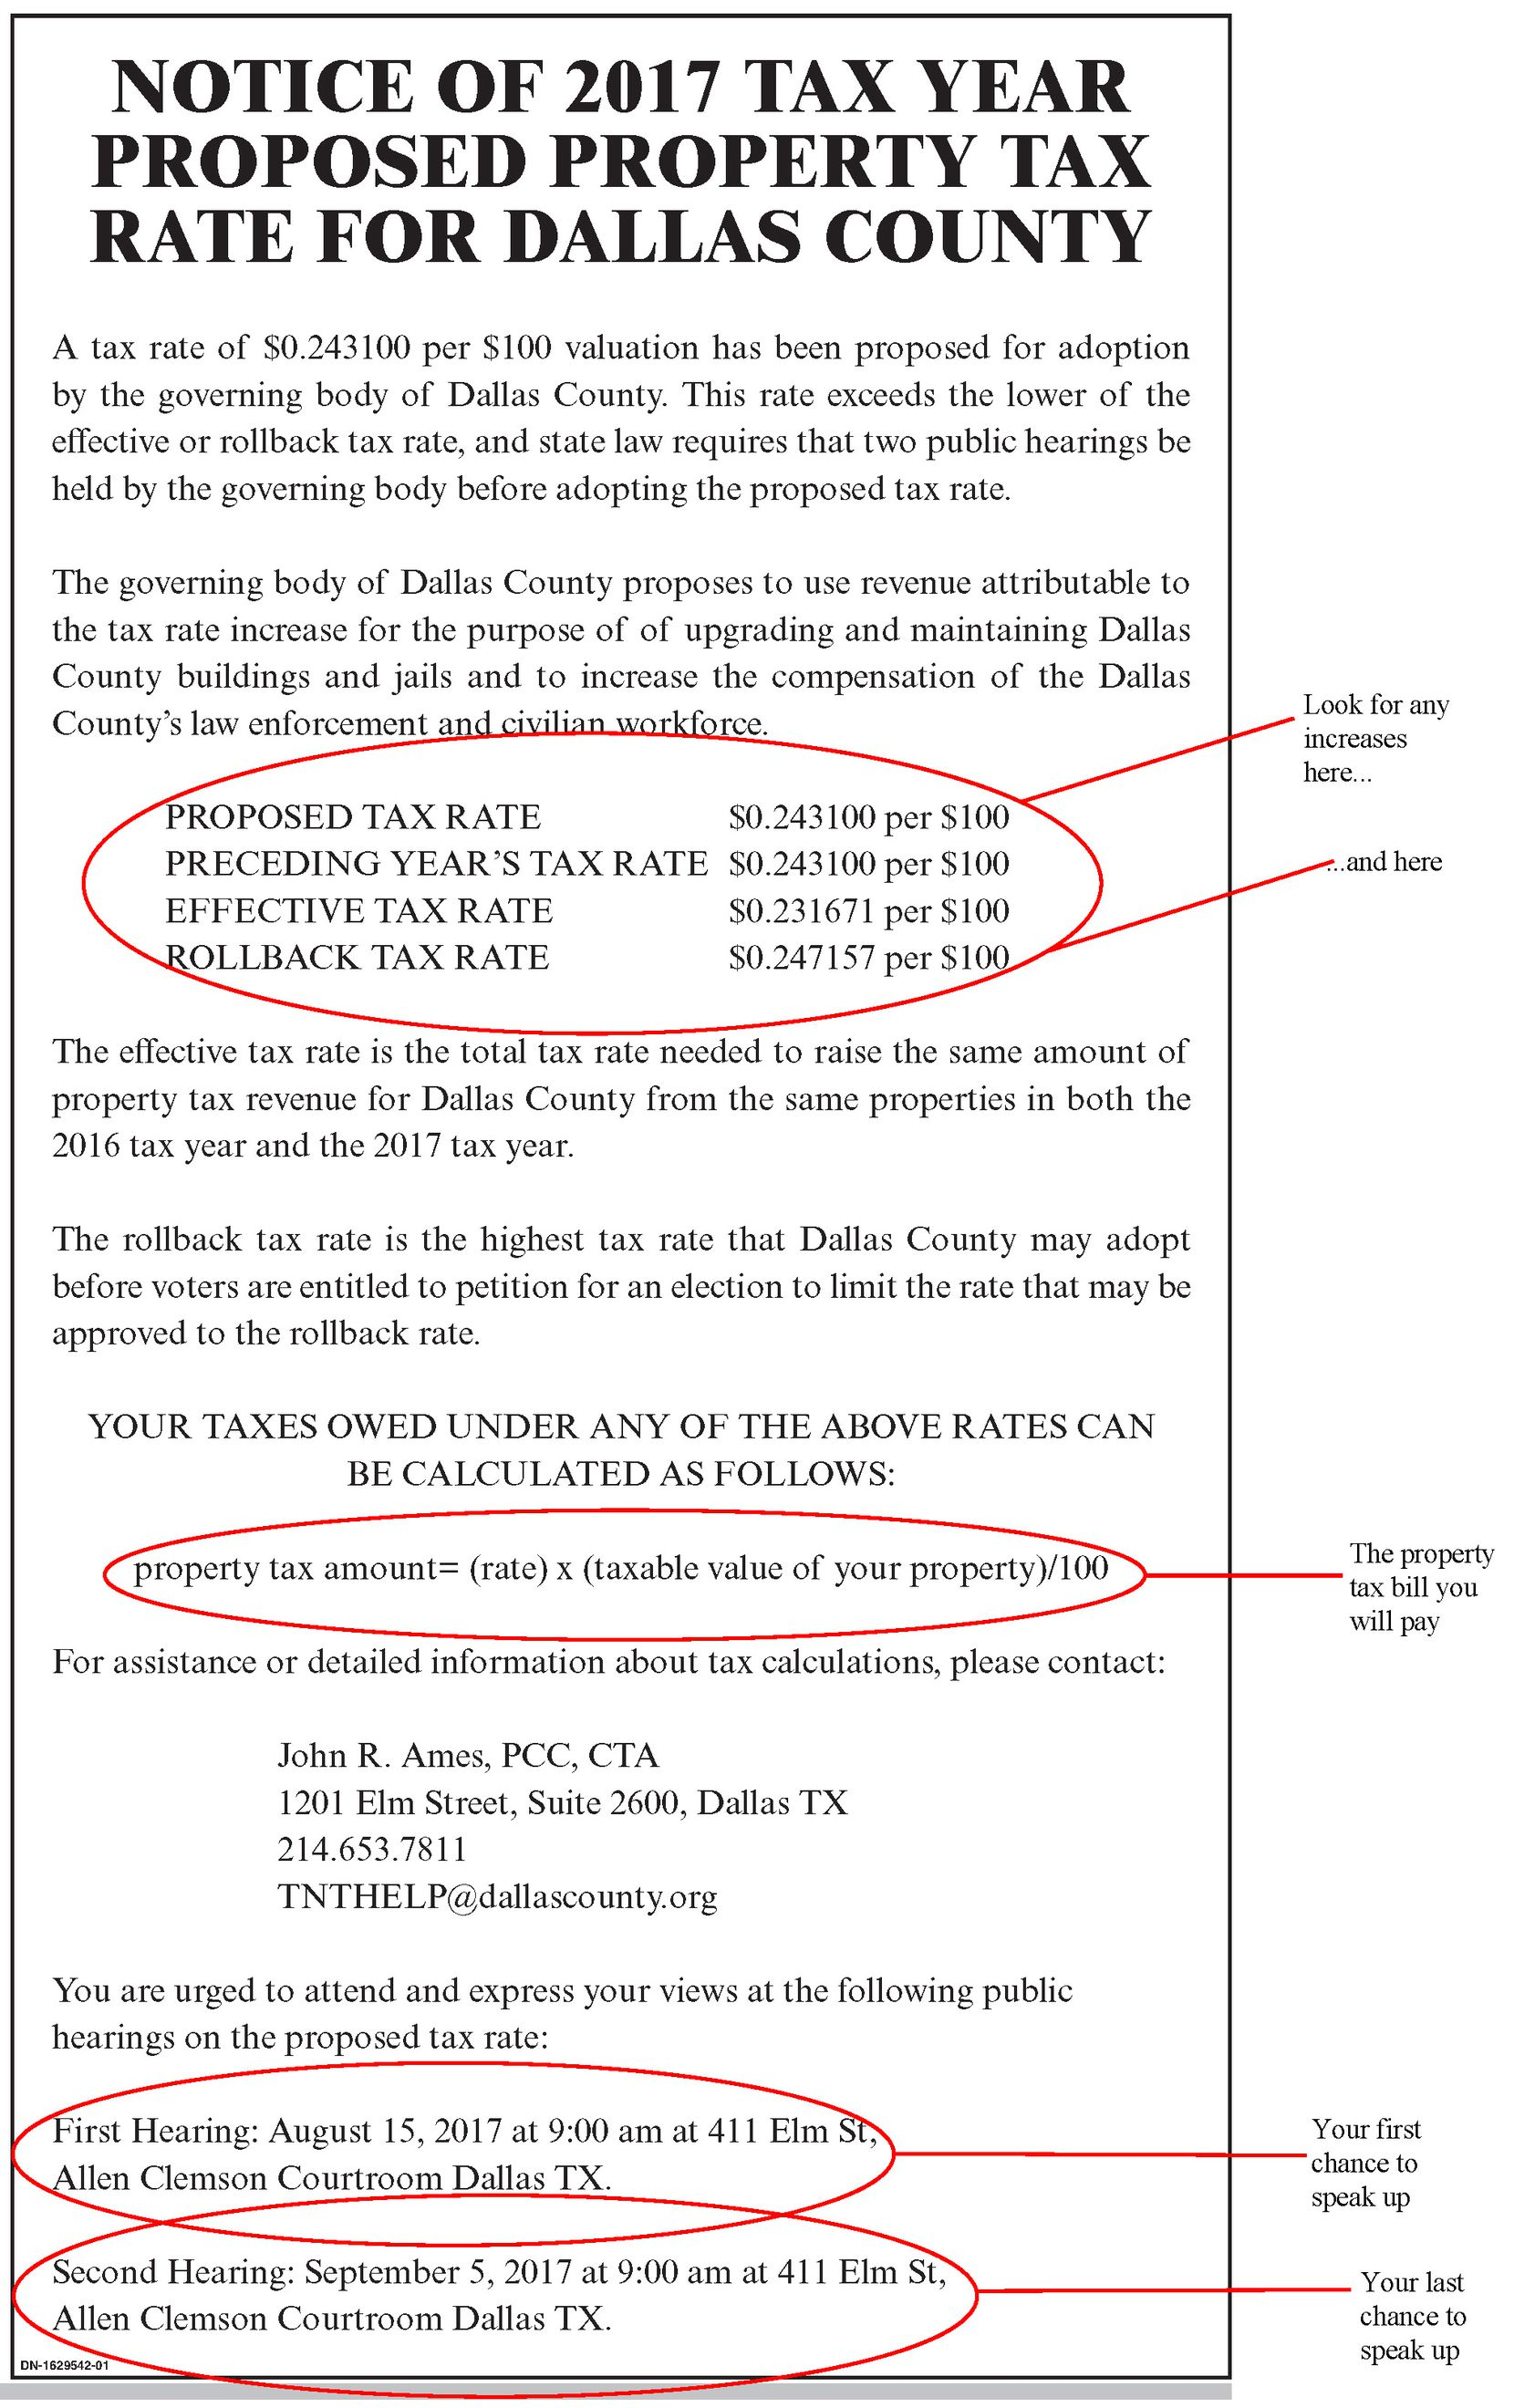 The Watchdog shows how to read an old property tax notice.